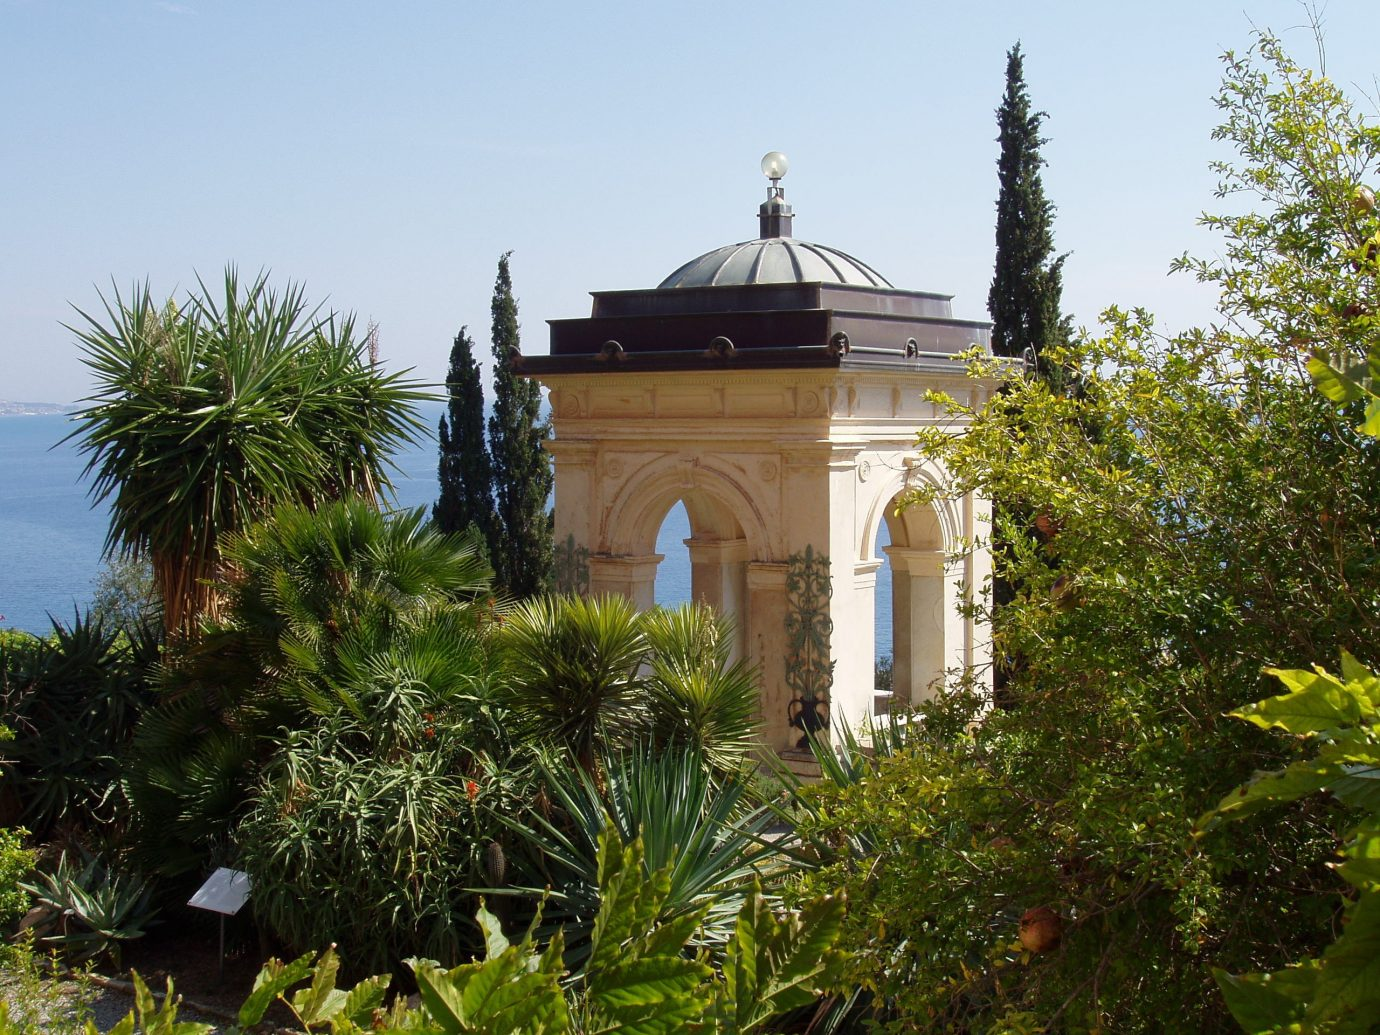 Italy Trip Ideas arecales palm tree estate sky tree plant Villa real estate building mansion house home facade outdoor structure Garden mausoleum chapel